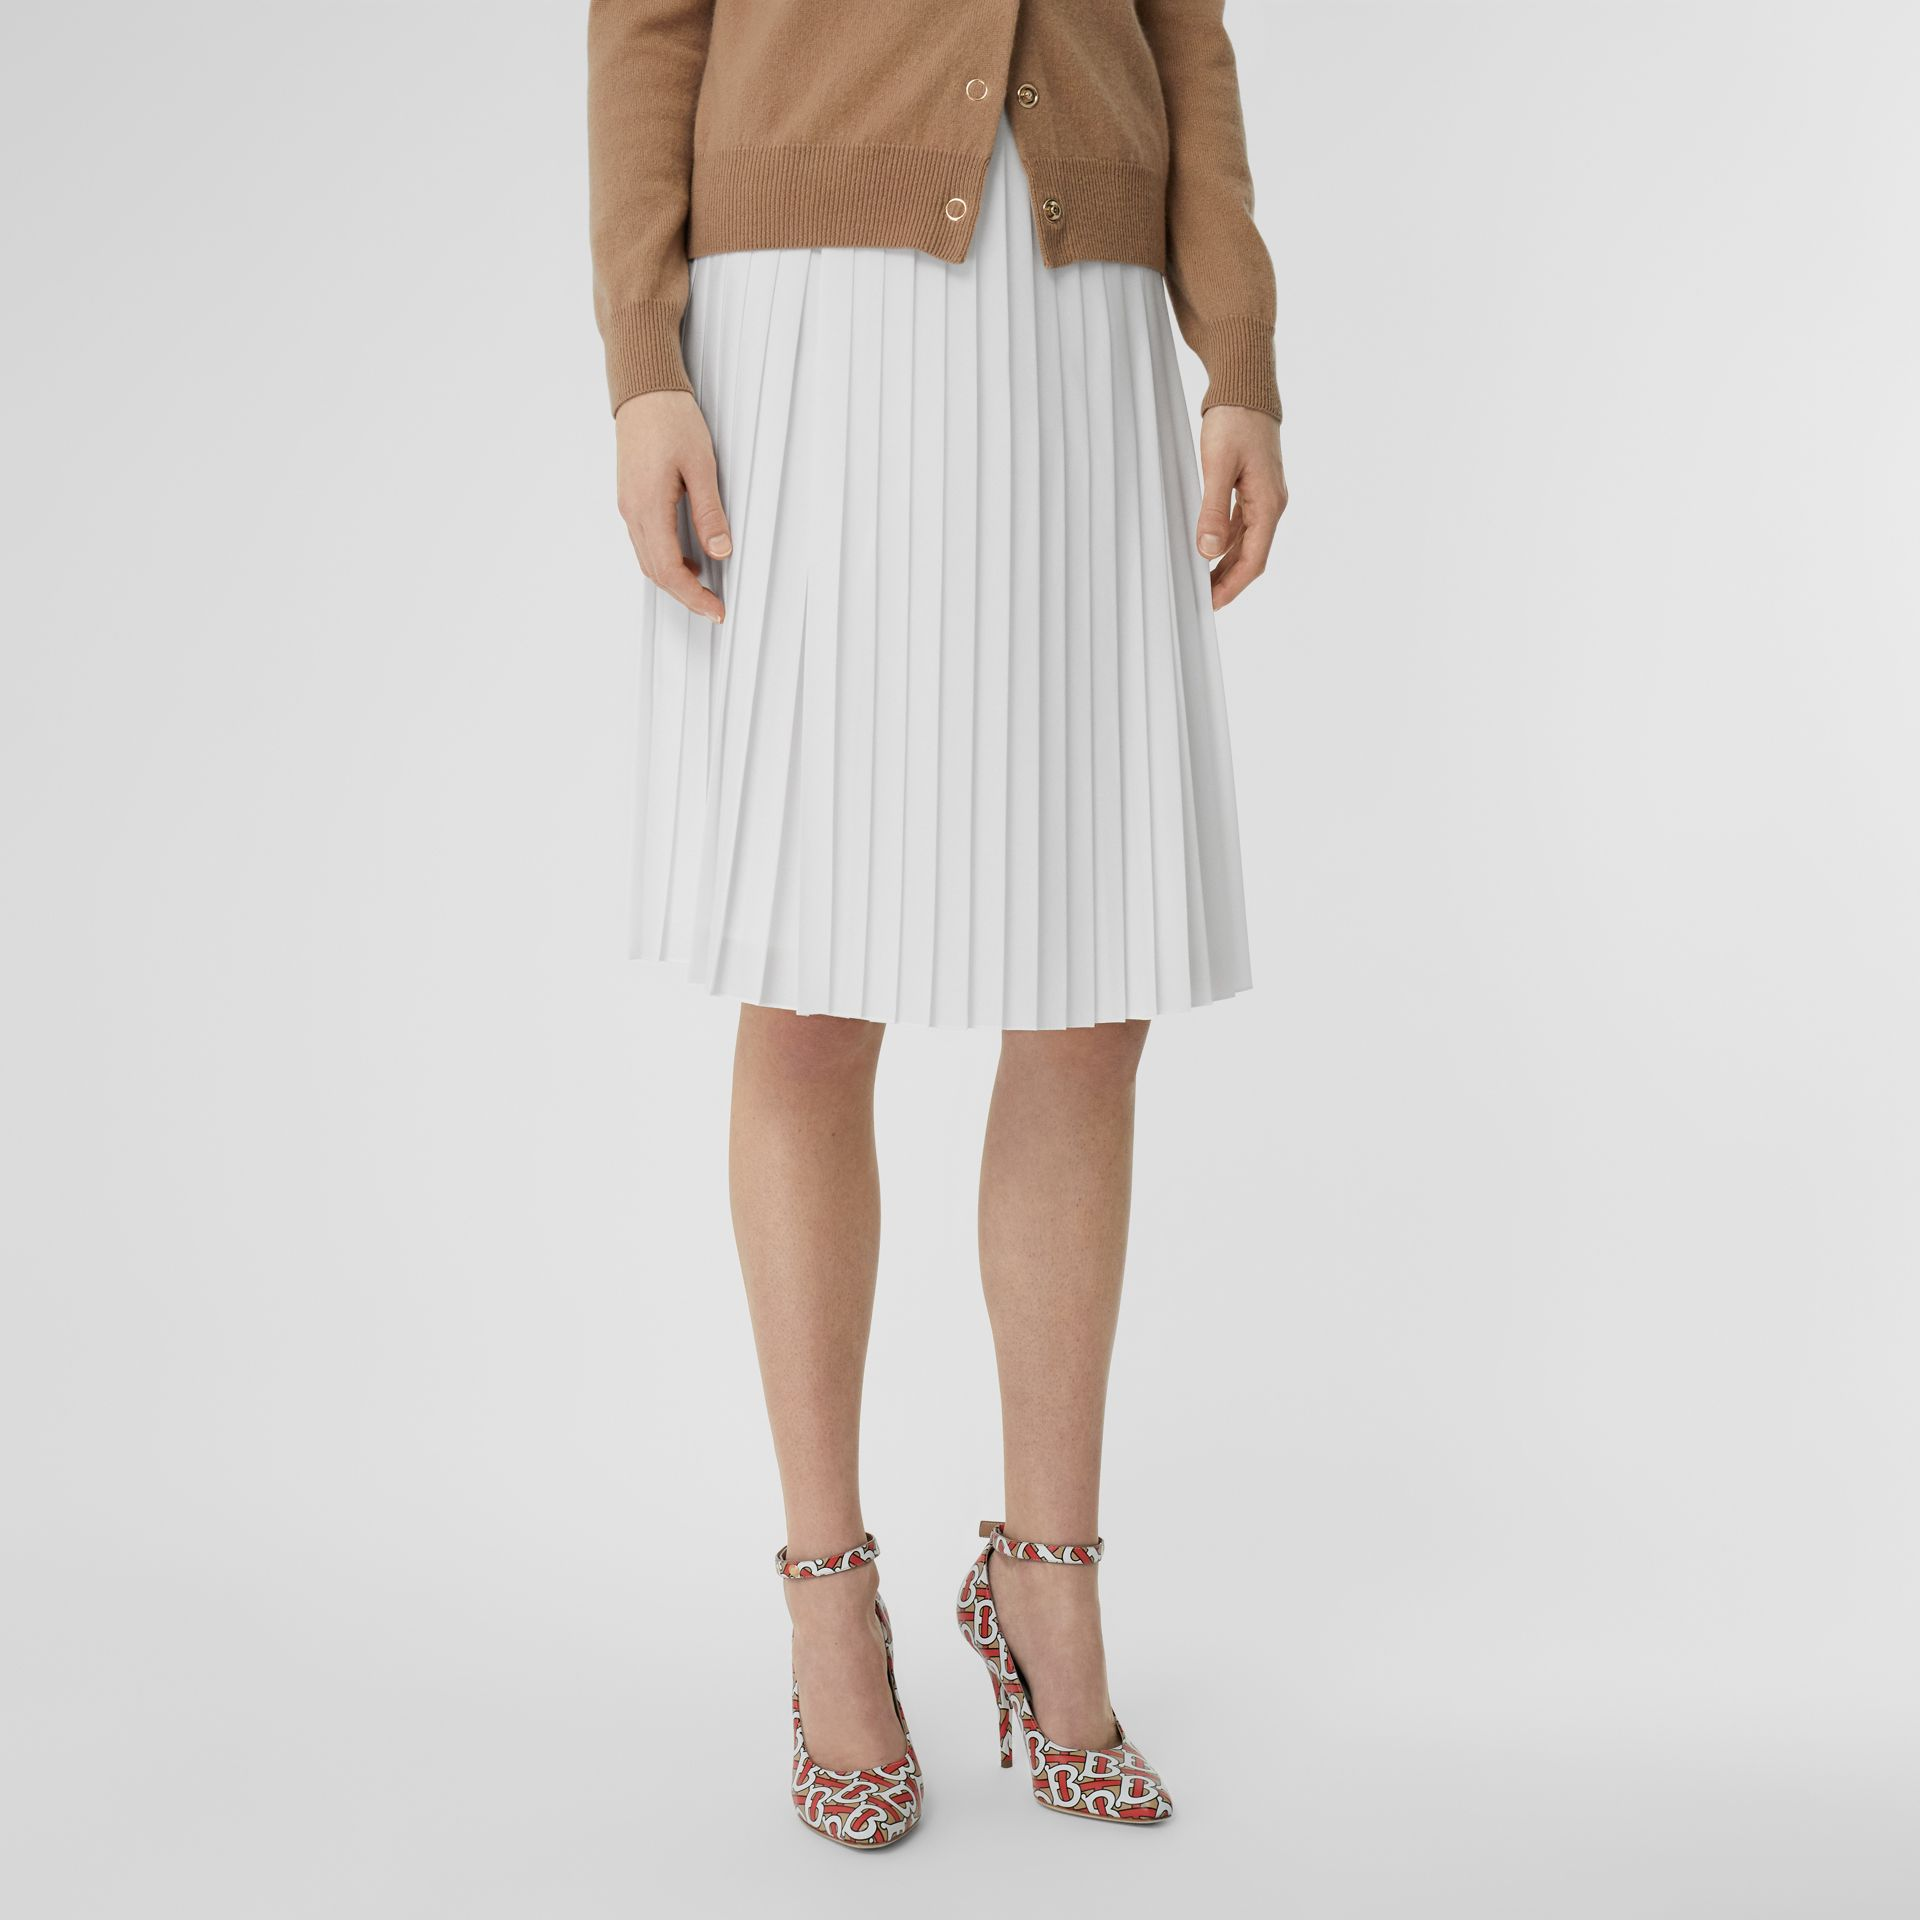 Silk-lined Pleated Skirt in Optic White - Women | Burberry - gallery image 4